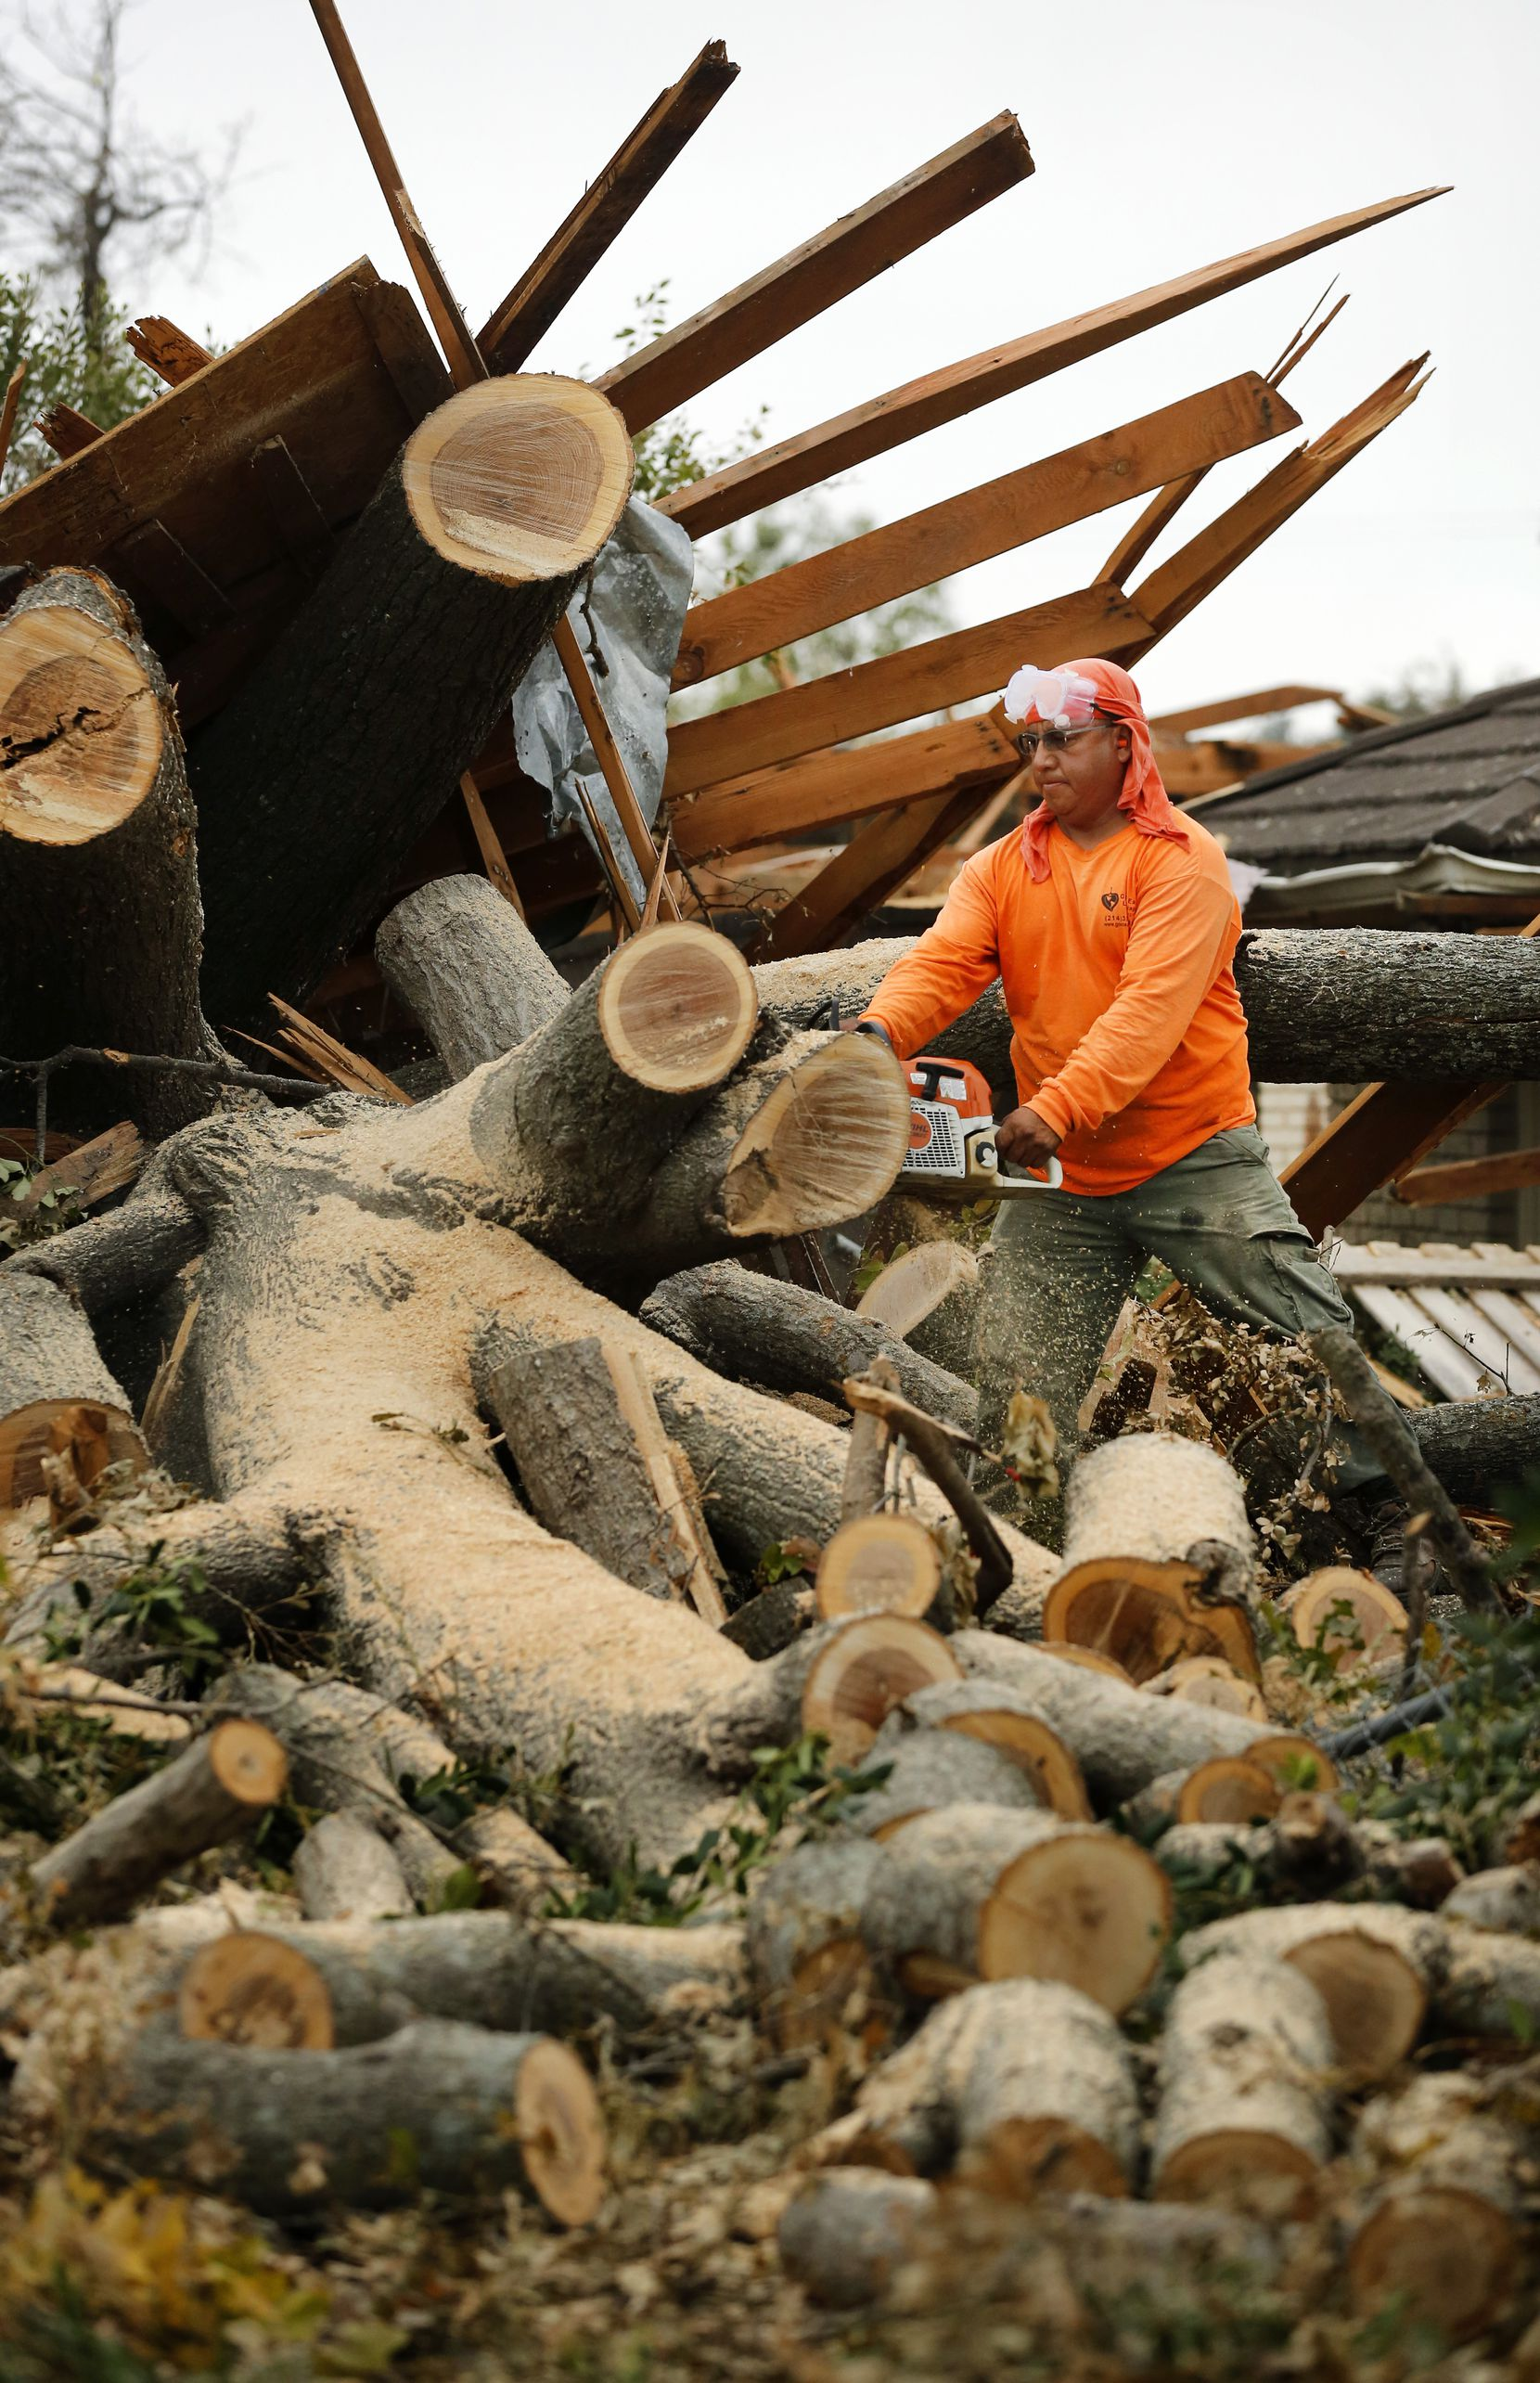 Landscaper Bartolo Bautista used a chainsaw to remove a toppled tree from a home on Lavendale Avenue in North Dallas last week.